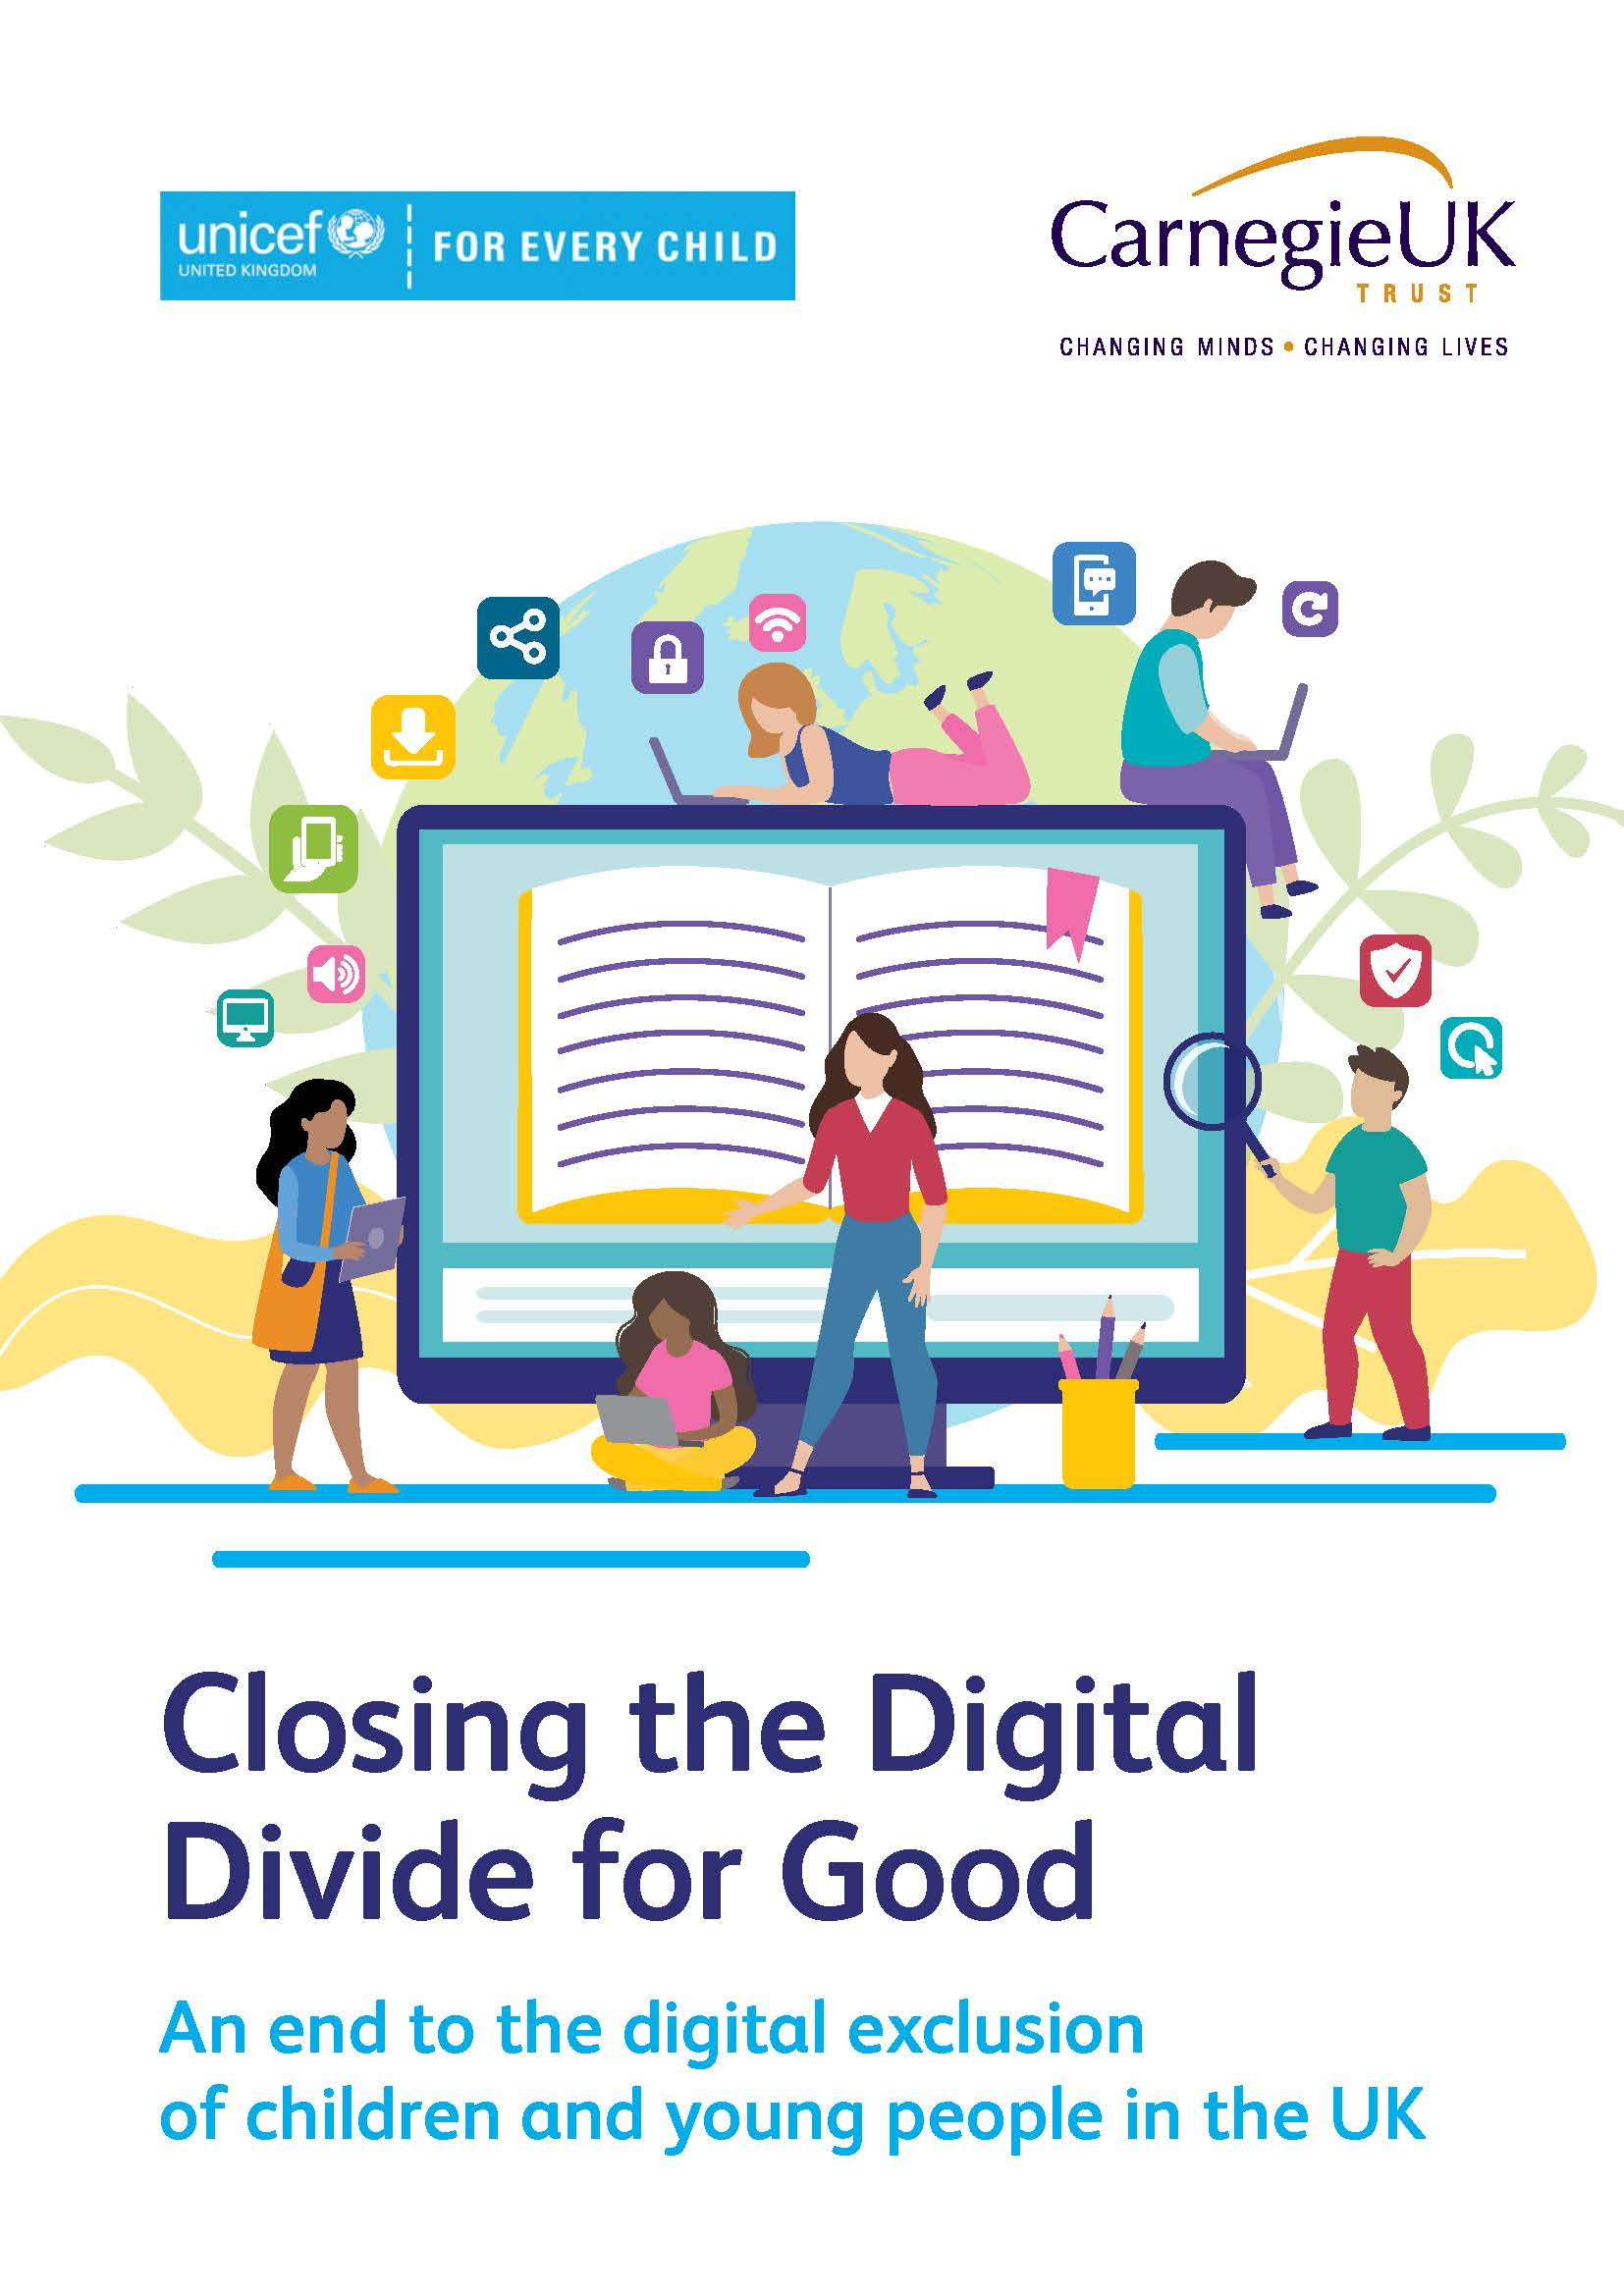 Closing the Digital Divide for Good